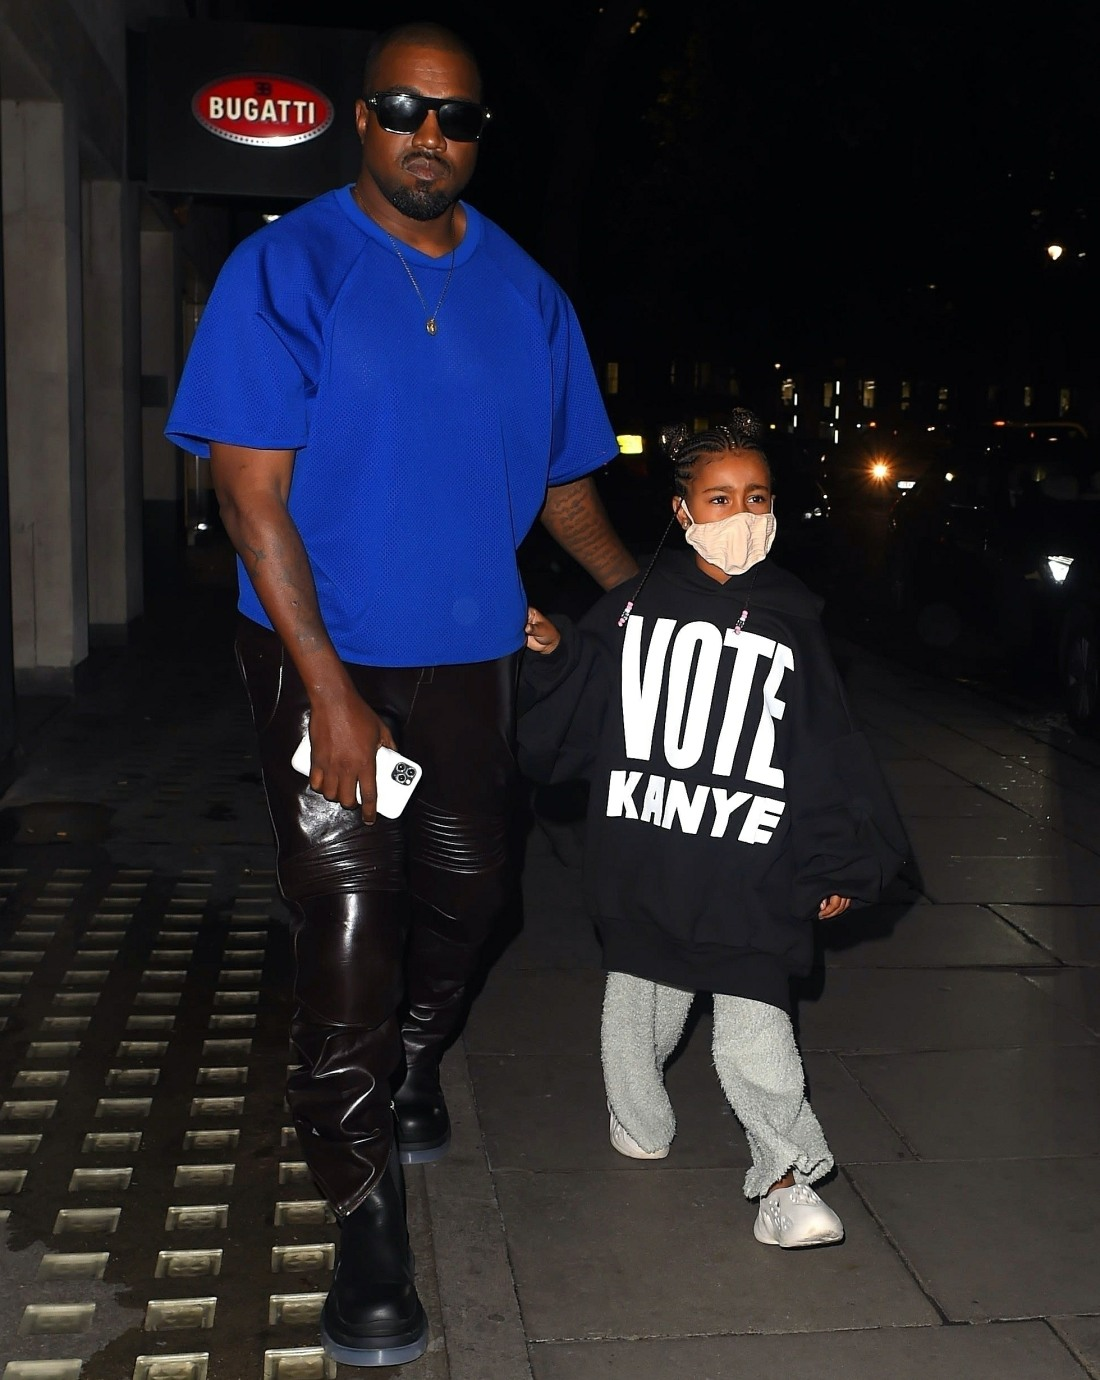 Kanye West has North West advertise his 2020 Presidential campaign at Hakkasan in London!